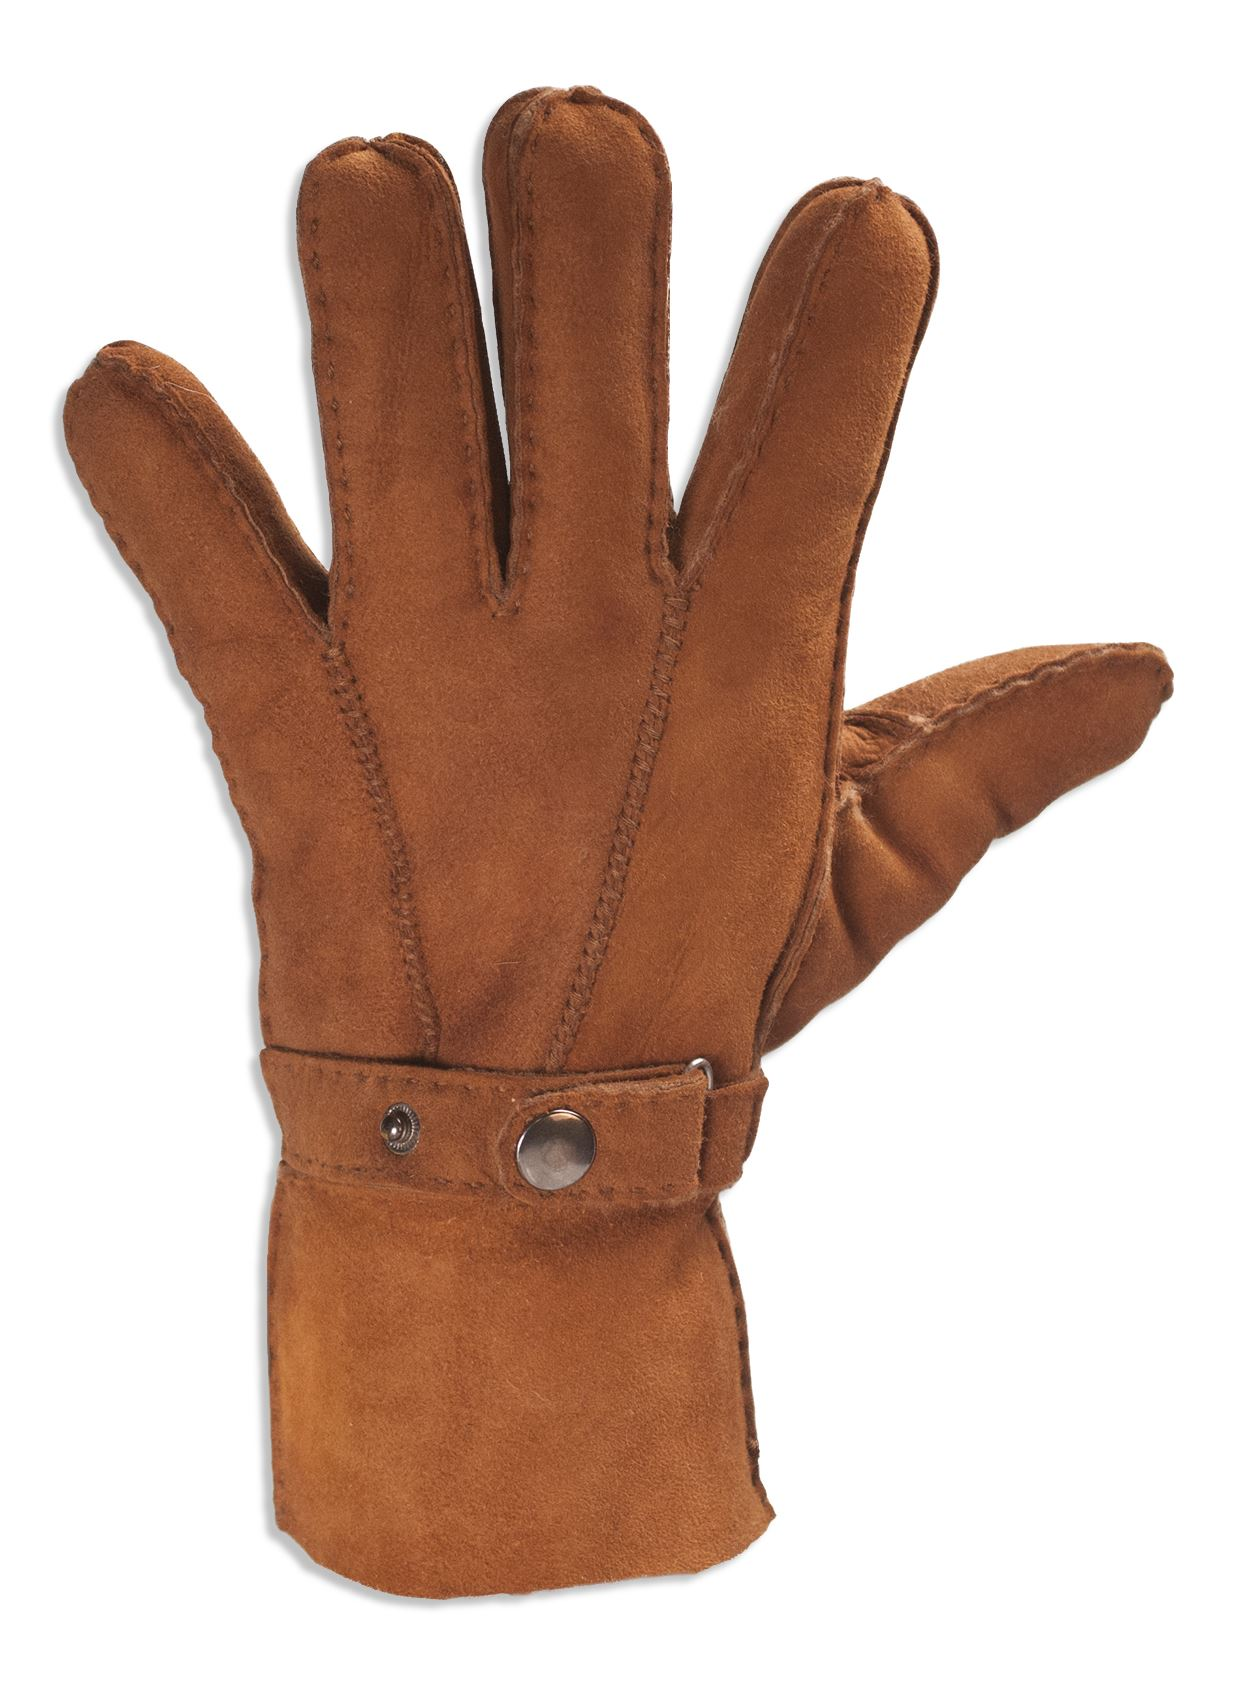 how to clean sheepskin gloves